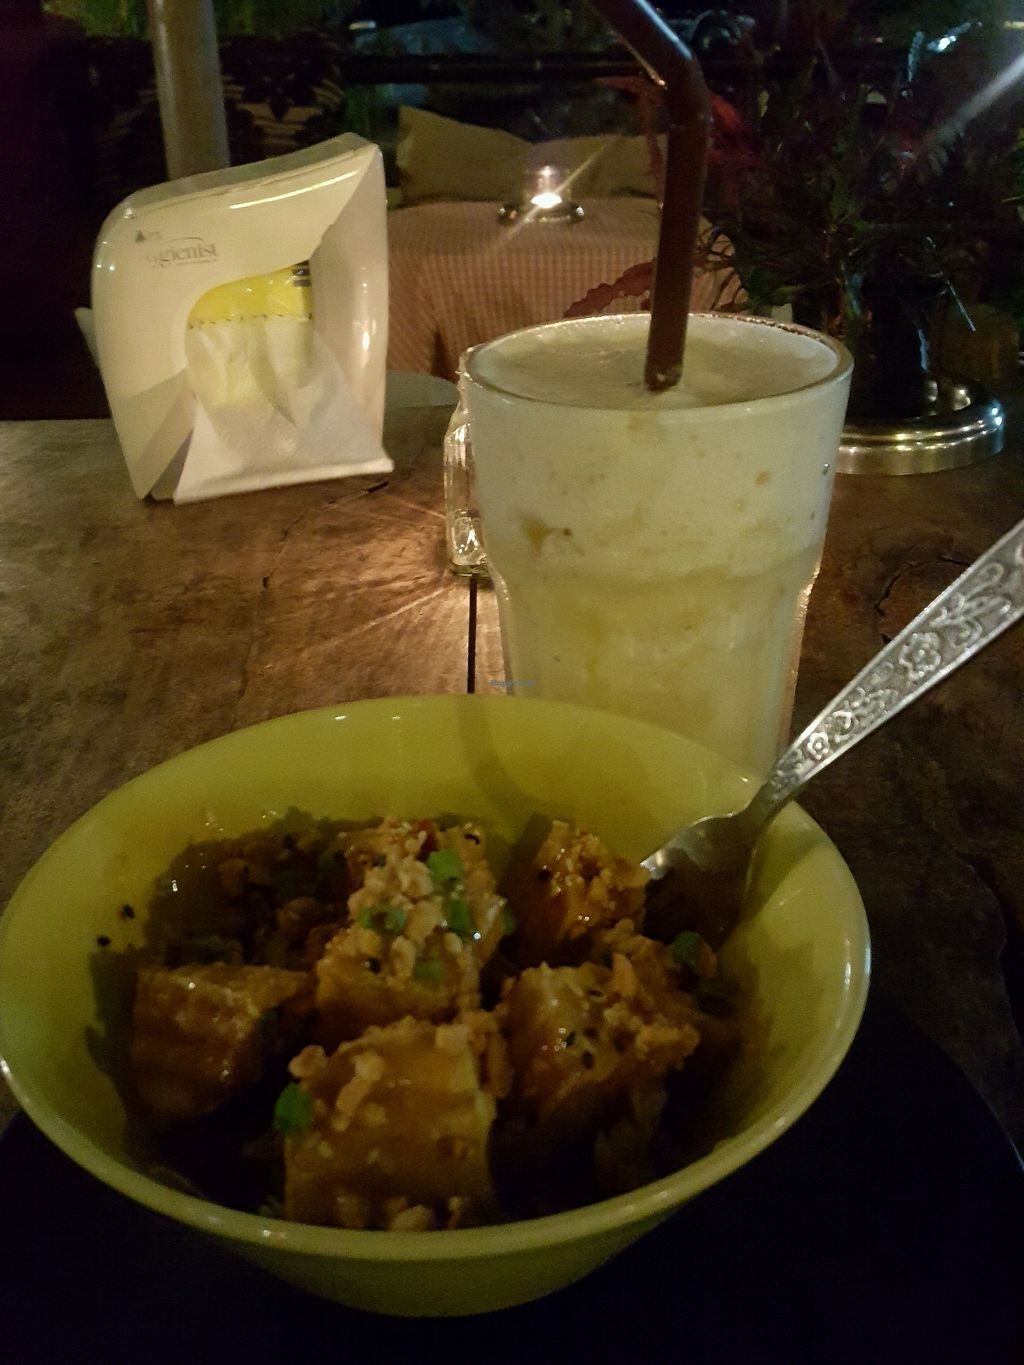 """Photo of CLOSED: Cuckoo's Nest  by <a href=""""/members/profile/Carolineof"""">Carolineof</a> <br/>stir tofu + salada (starter) <br/> December 28, 2017  - <a href='/contact/abuse/image/85910/339980'>Report</a>"""